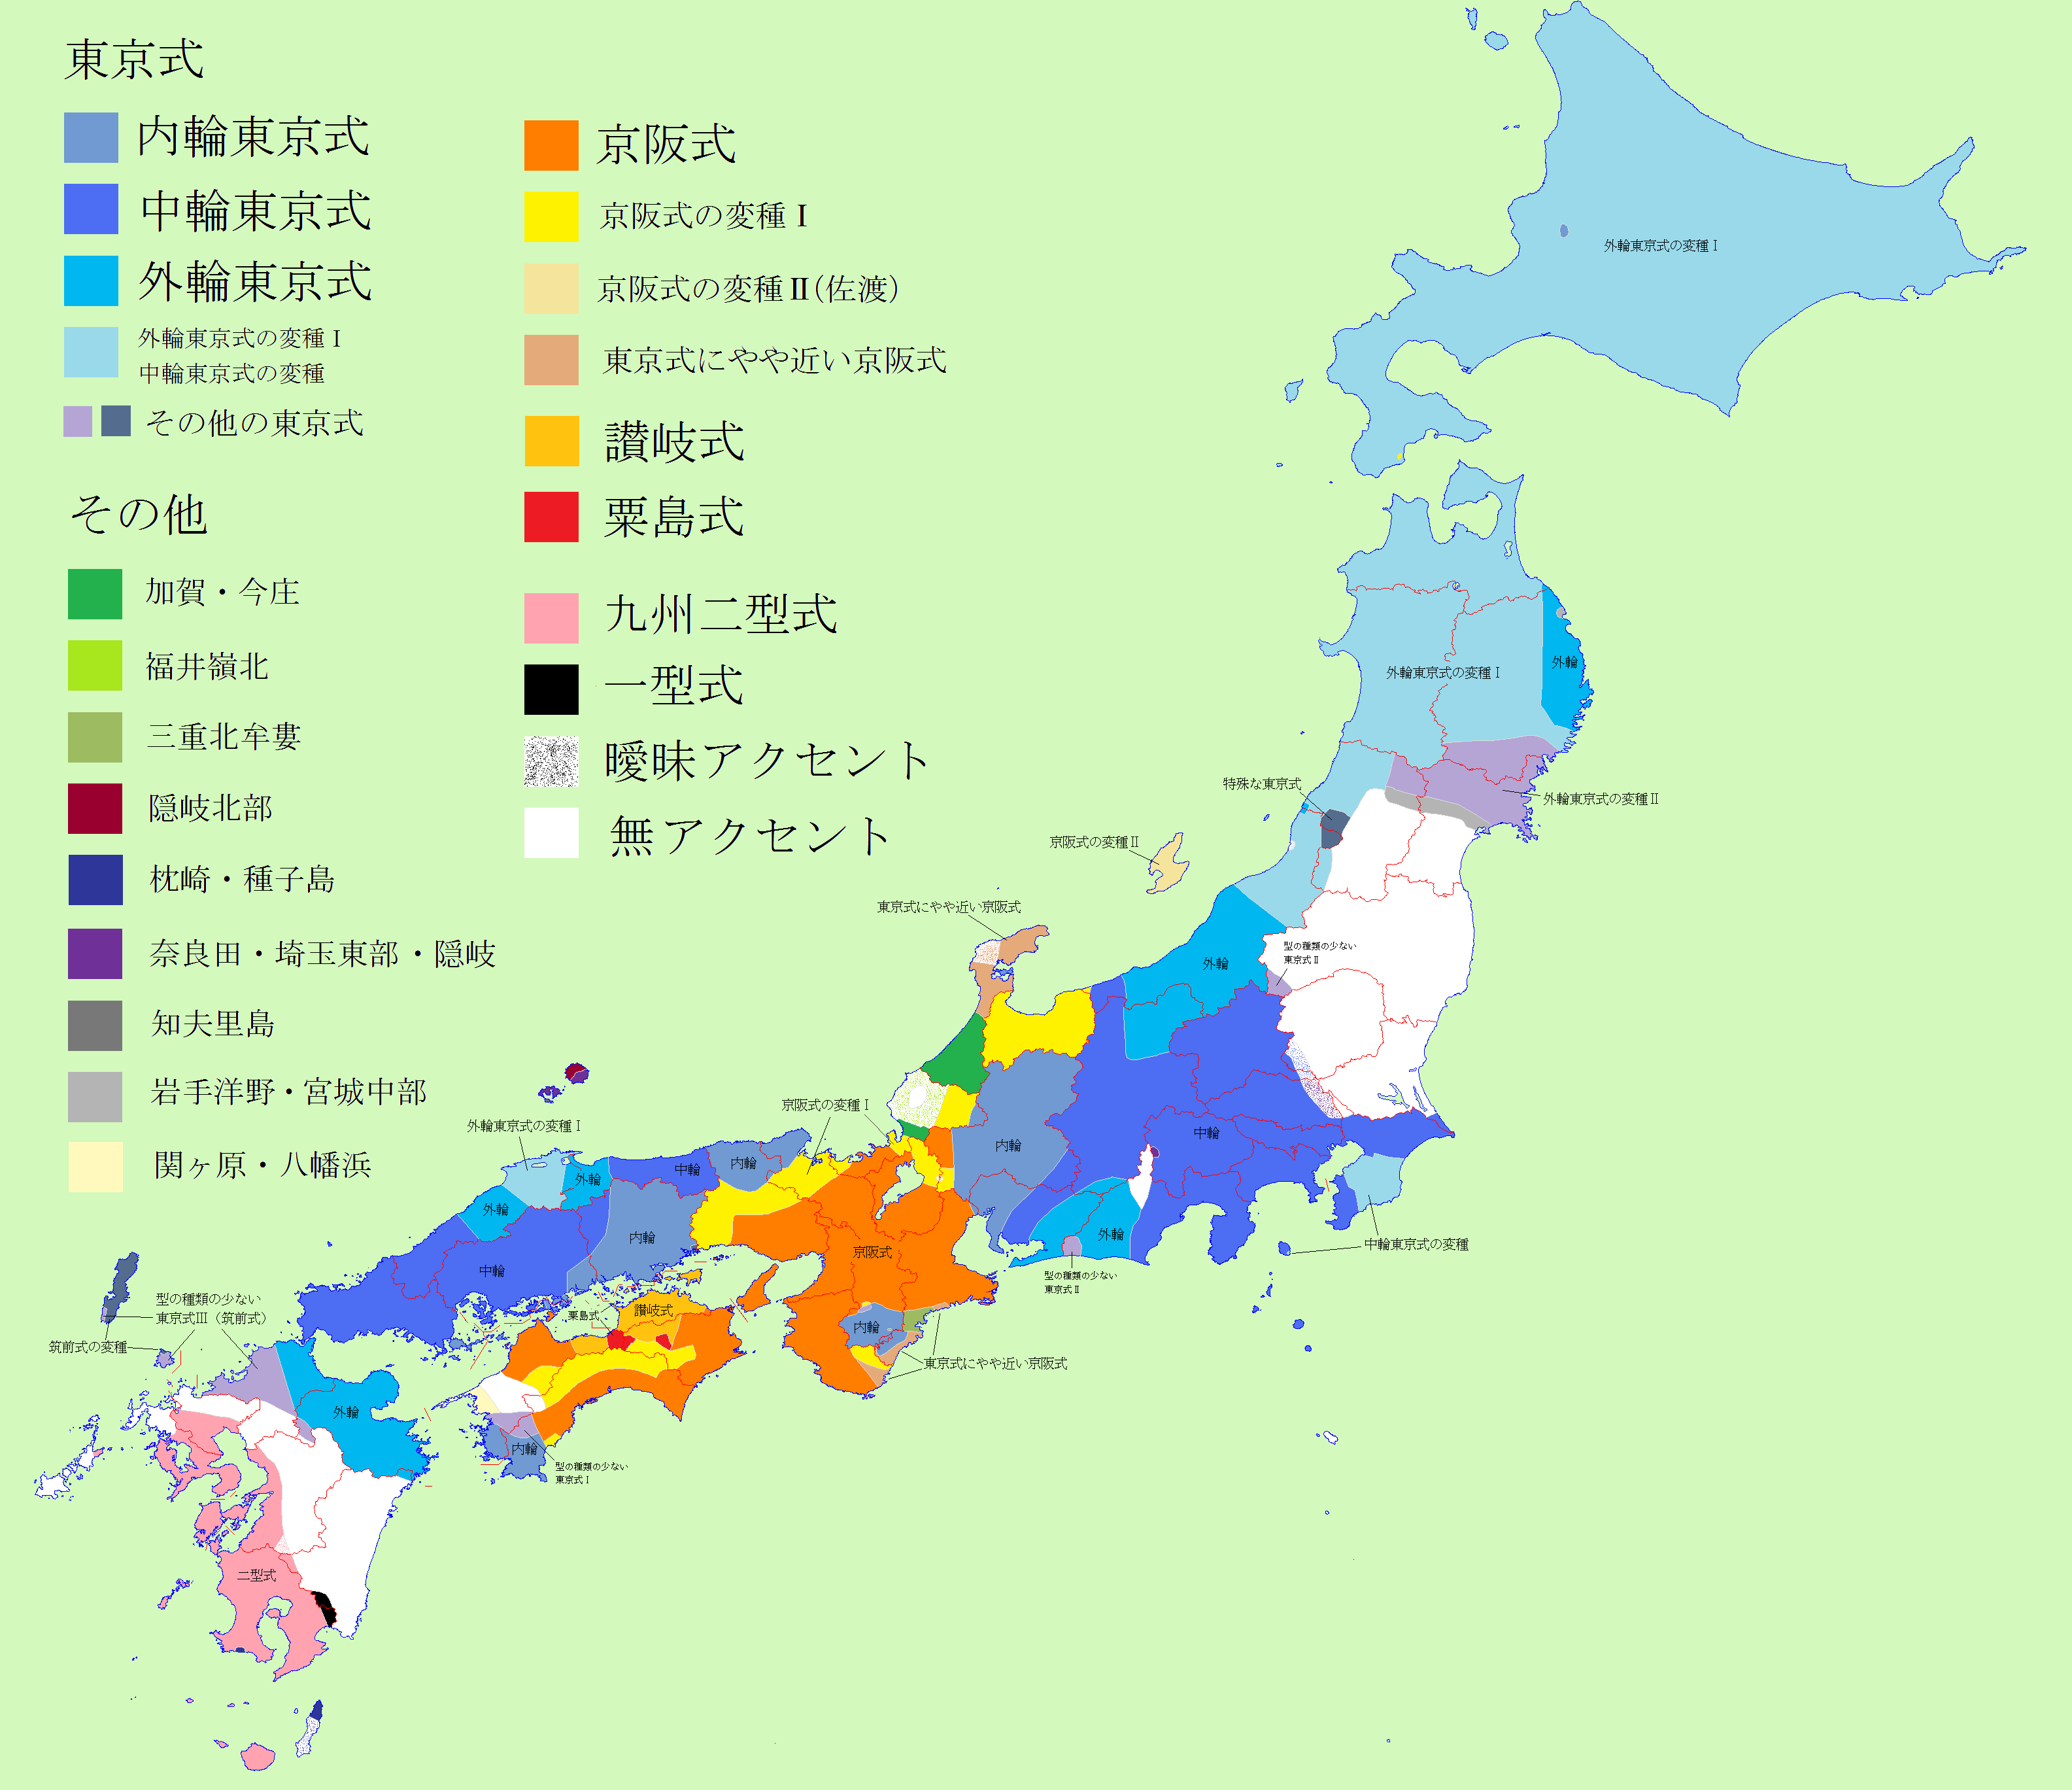 Japanese_pitch_accent_map-ja.png